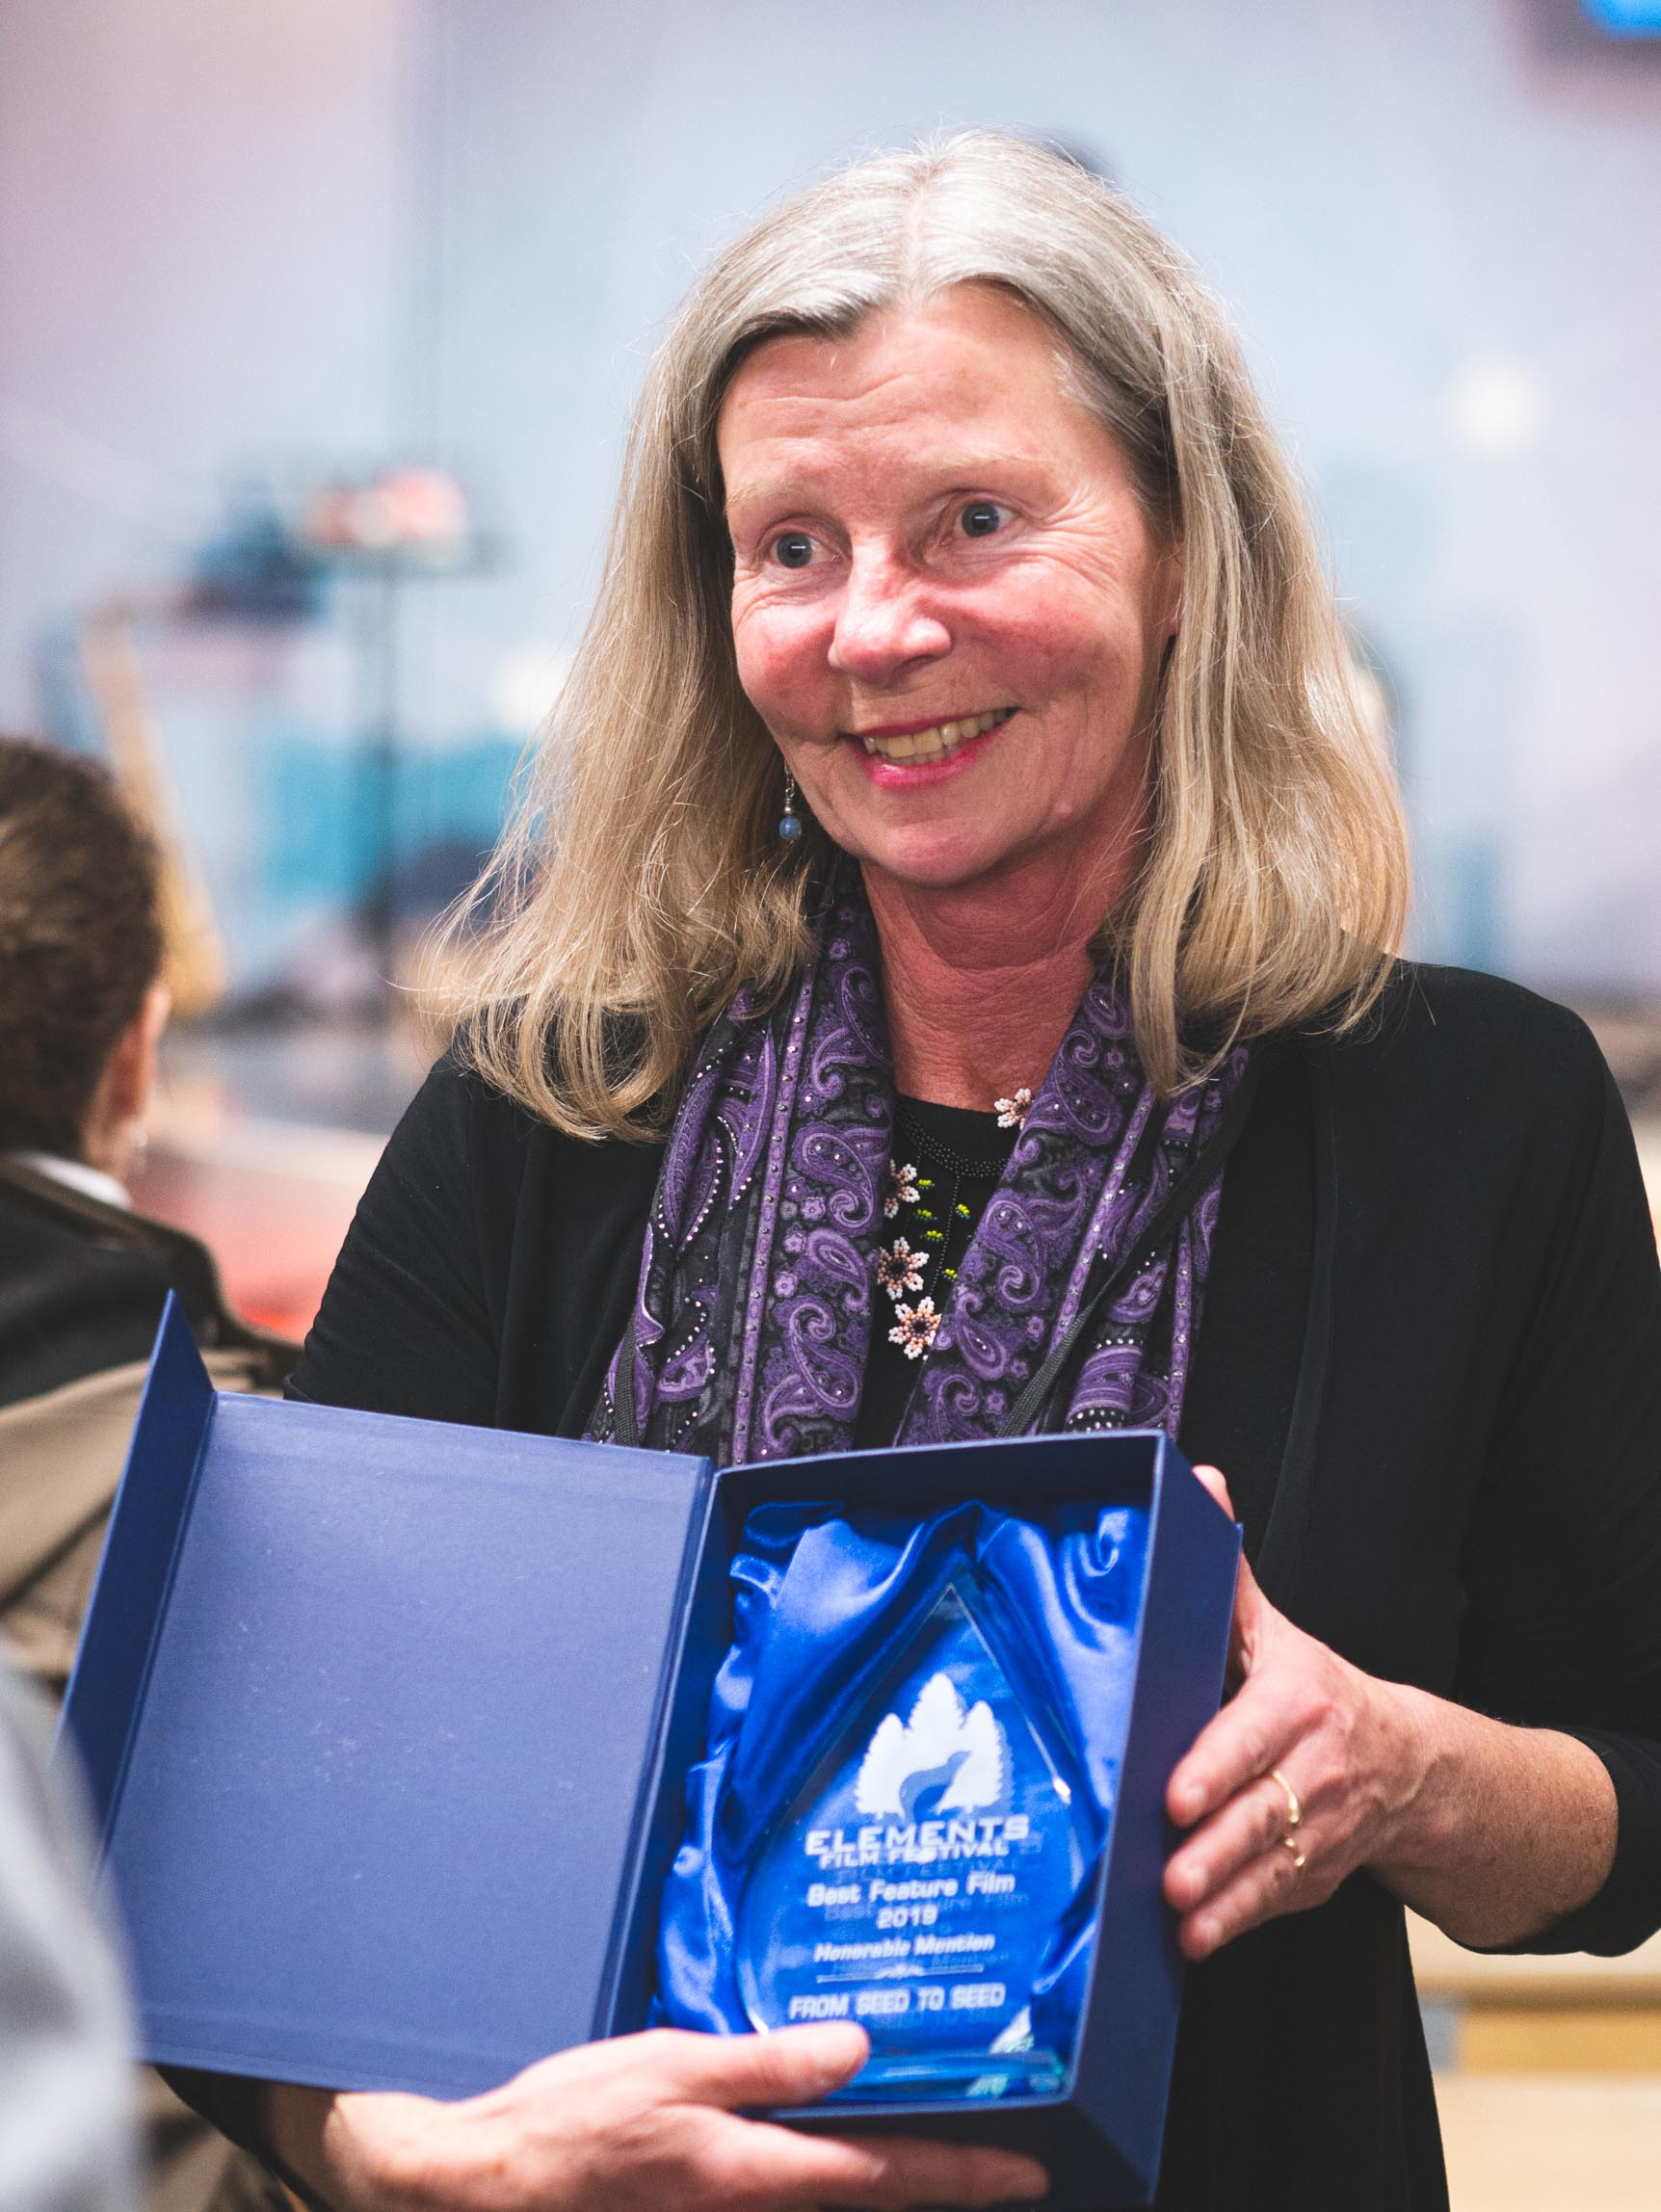 katharina with award Elements2019_web-119.jpg